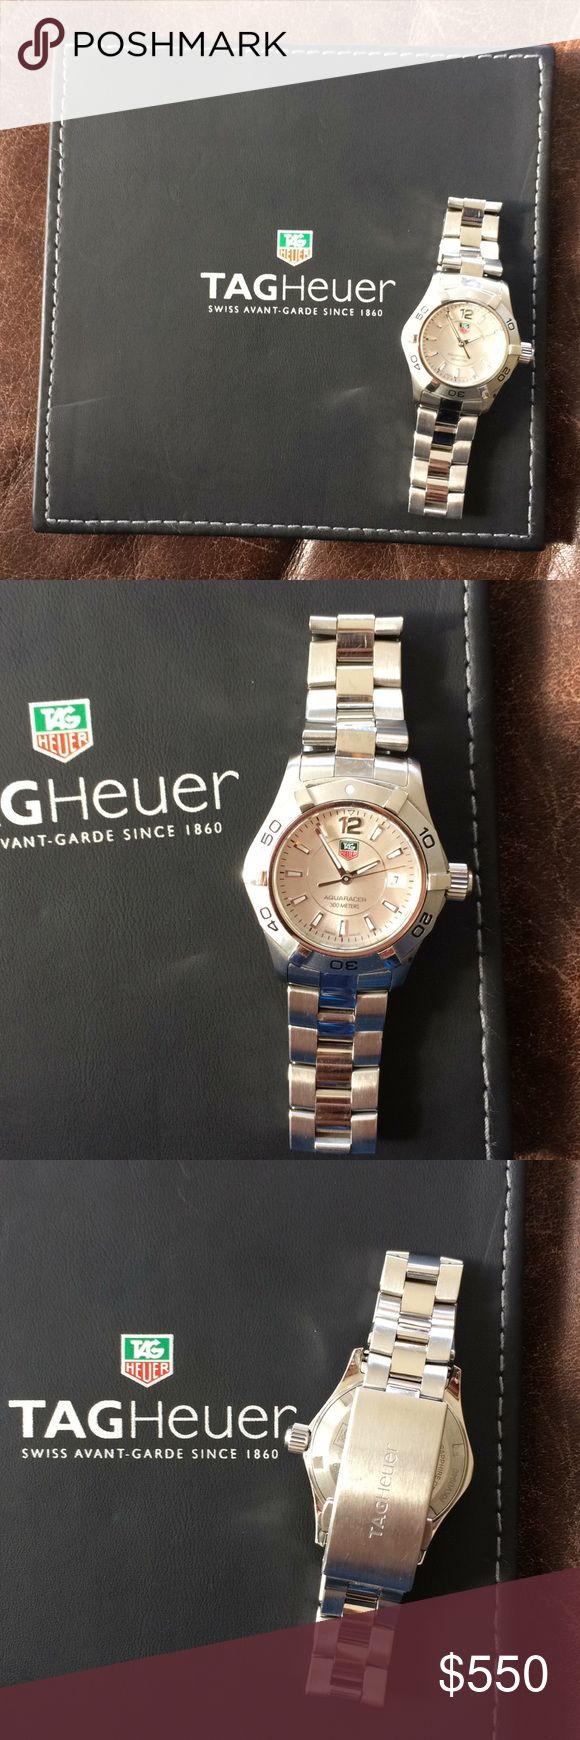 "Tag Heuer Aquaracer watch Authentic Tag Heuer aquaracer 300m watch for sale. Pearl face. In good, used condition. Just replaced the battery 1/4/18. Fits up to 6"" wrist. Only worn on special occasions. Comes with booklet, but no longer have box, extra links, or receipt. Tag Heuer Accessories"